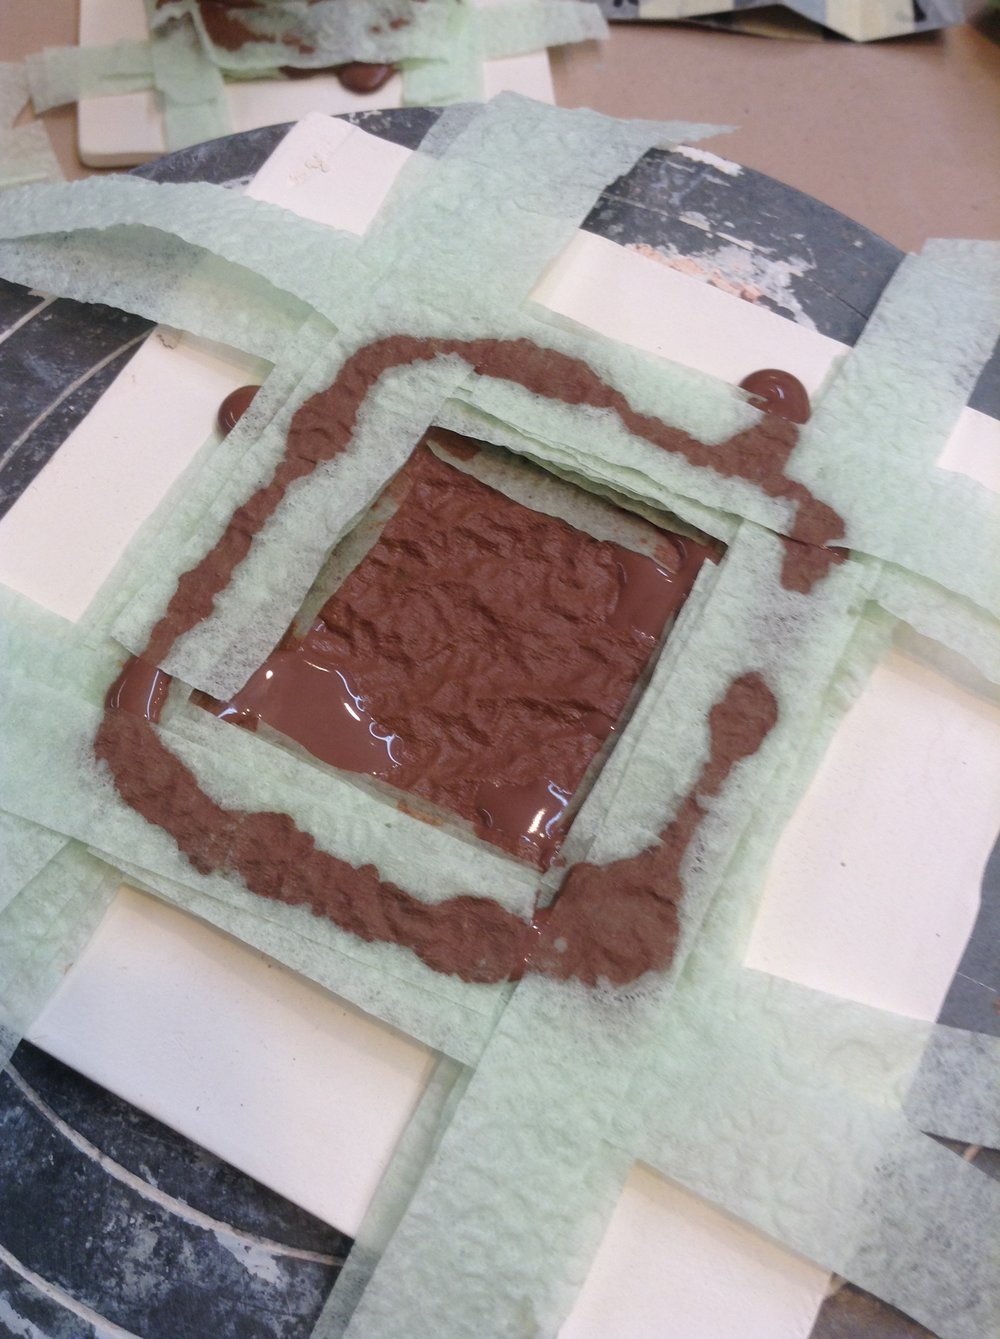 A few layers of square shaped pathway stacked on top of the solid base. Here the clay paths are supported by thin napkin strips because I wanted to find out if an open center would be easier to manage or would dry faster. Maybe, but the solid napkin square used as a layer is much faster. I'm particularly fond of the dimpled texture of the bottom layer that happens when the napkin embossing wrinkles up. (I can't prevent it anyway!)